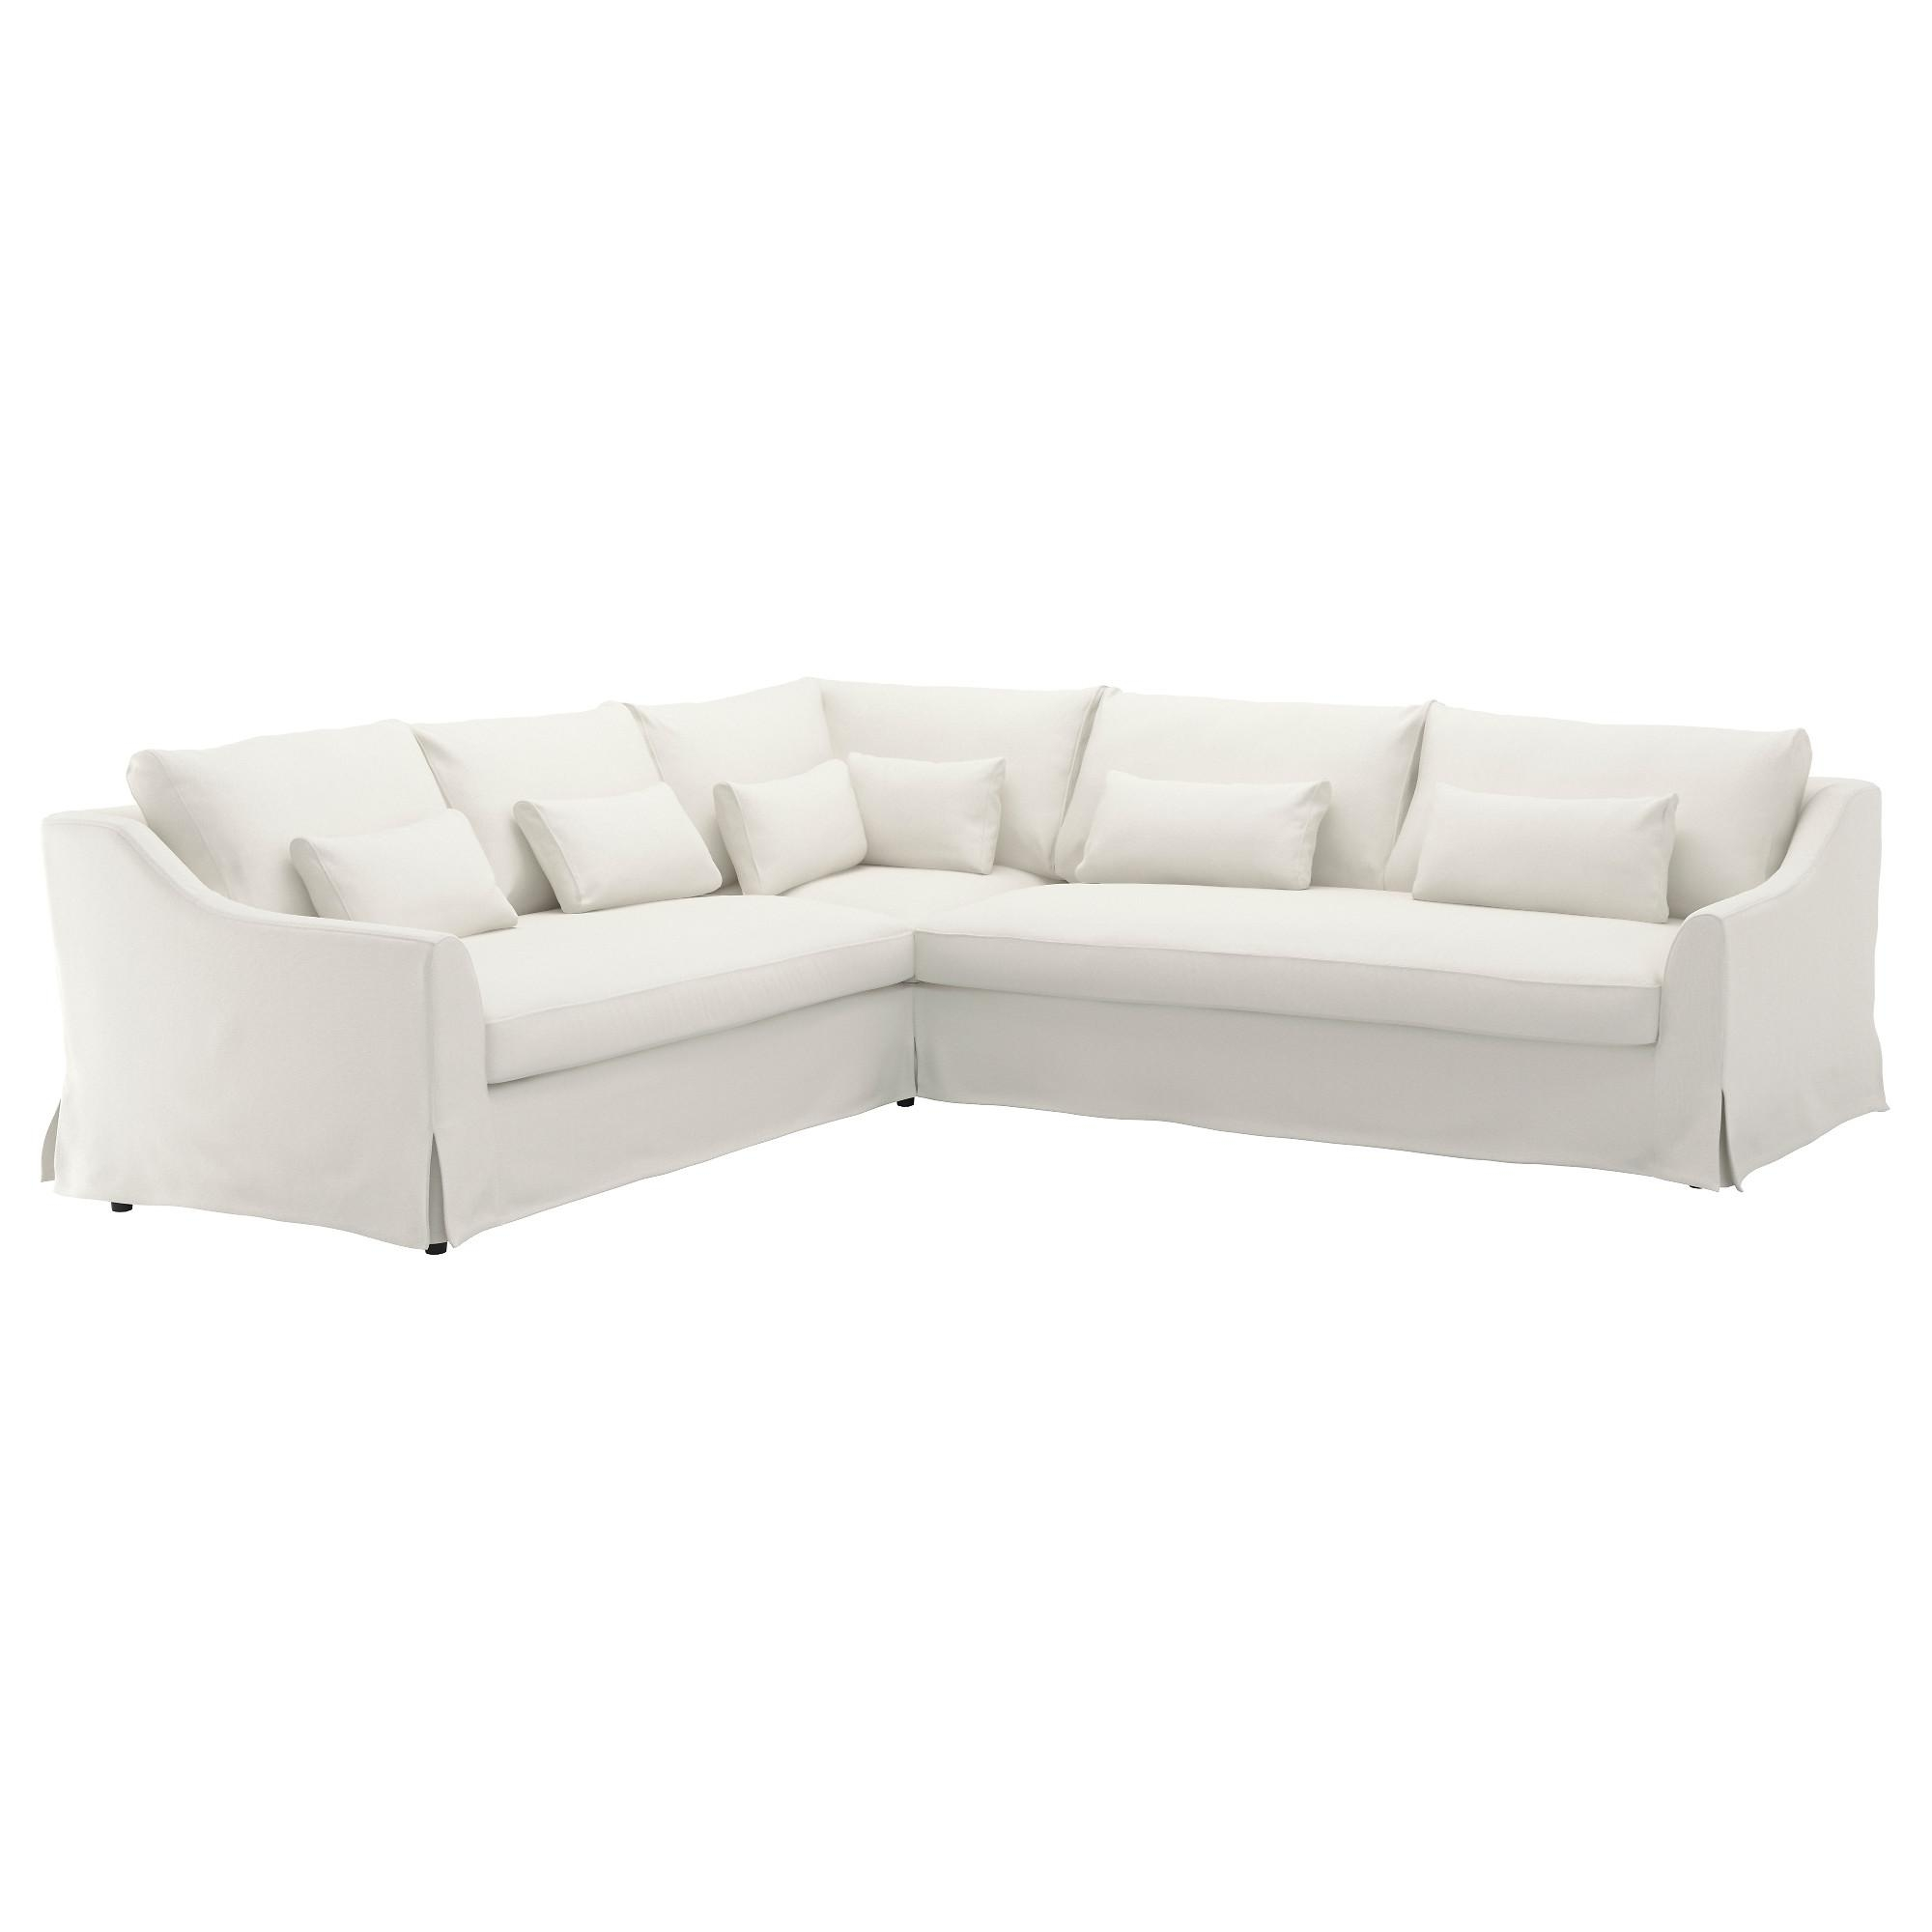 Fabric Sectional Sofas – Ikea Pertaining To Ikea Sectional Sofa Sleeper (View 15 of 20)